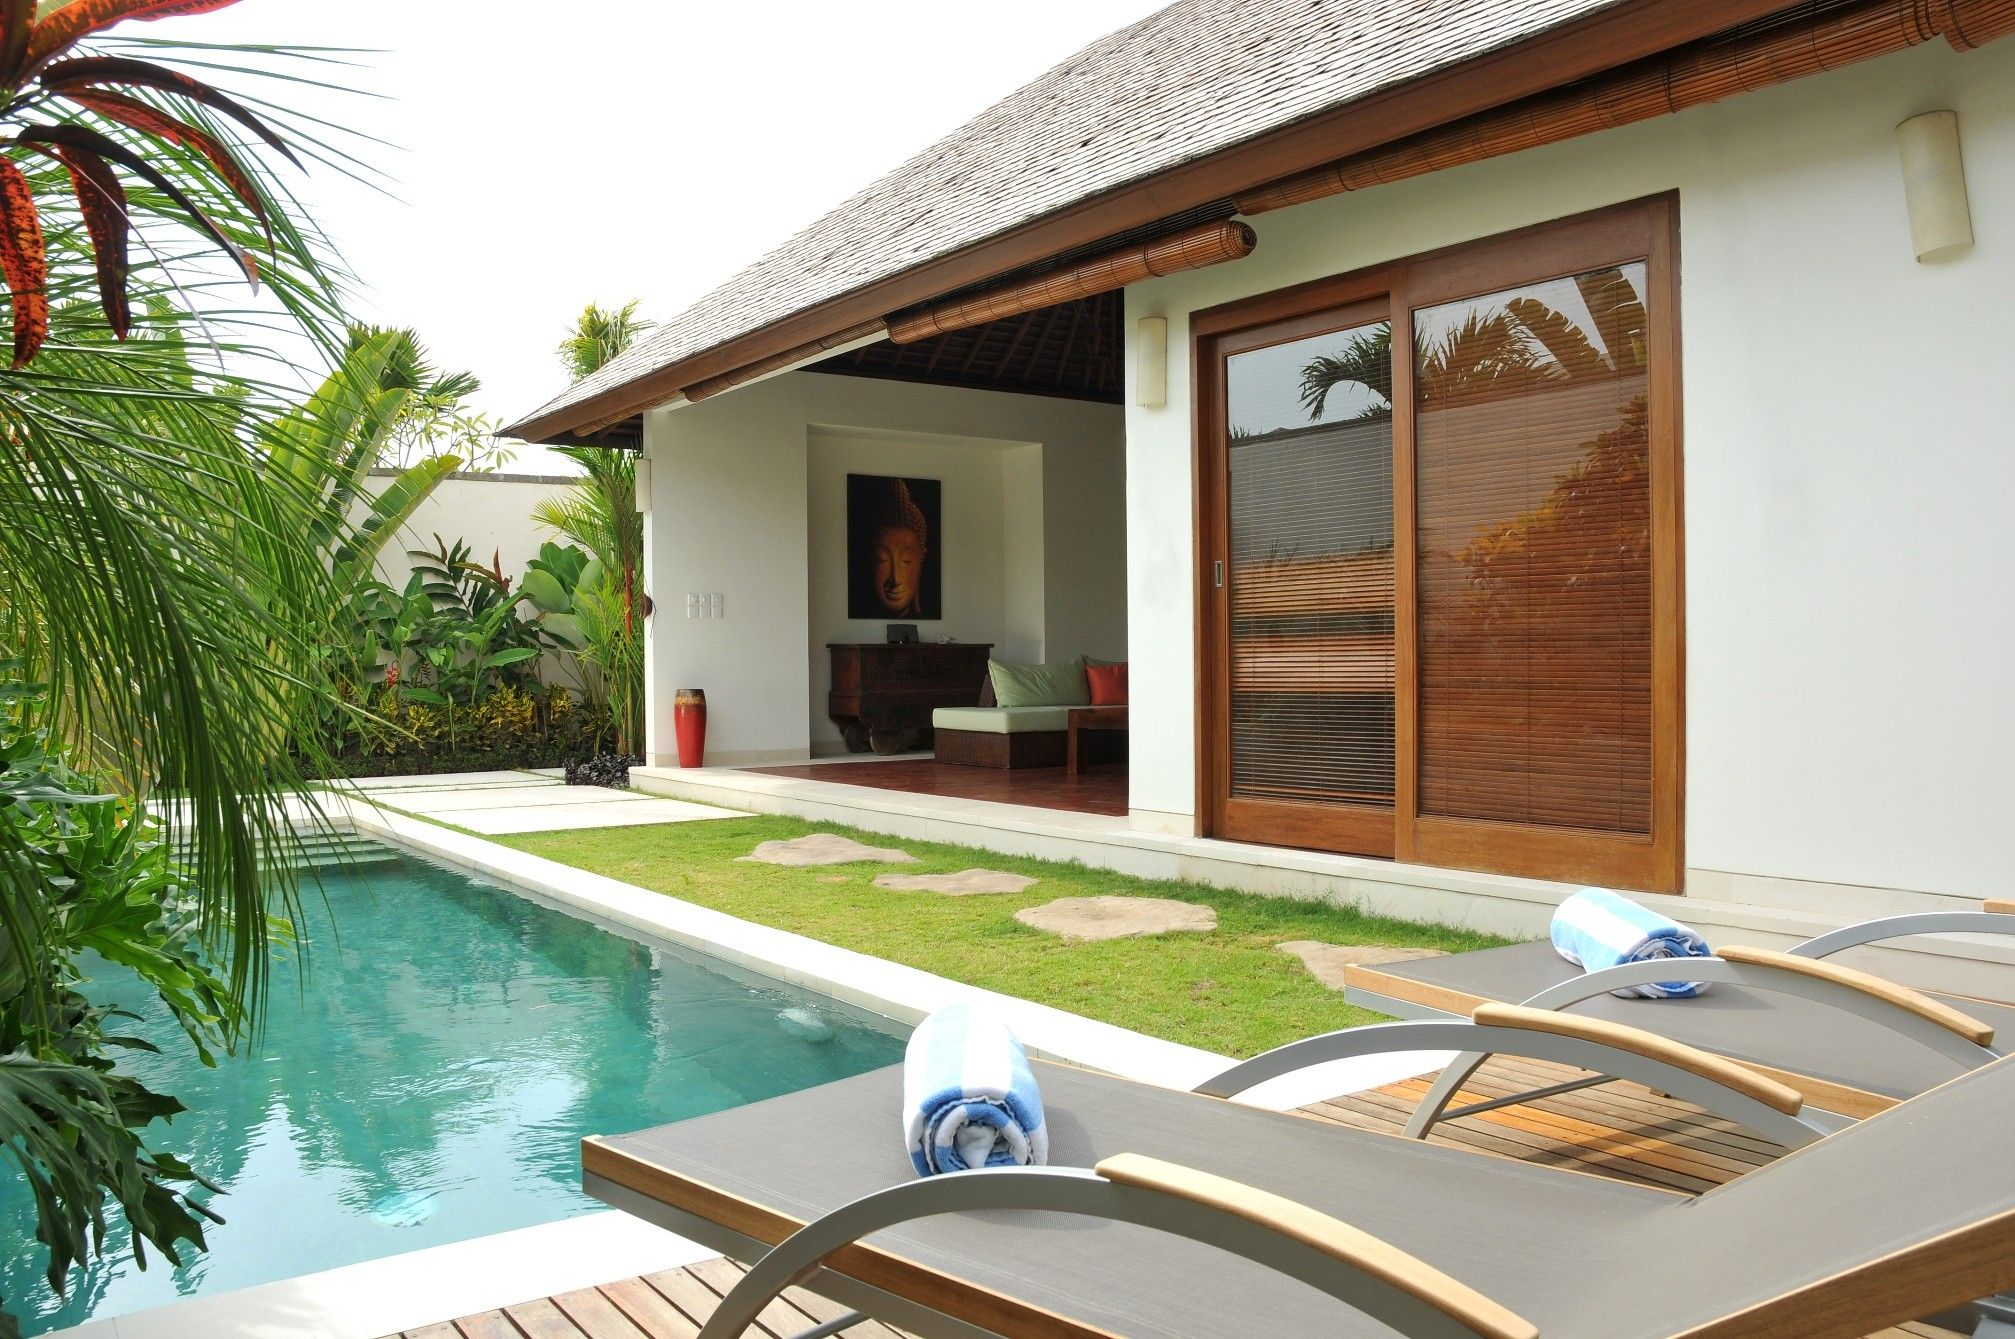 Villas In Bali Indonesia Private Pools Staff 1 9 Bedrooms 2 18 Persons Dream House Plans Villas In Europe Bali